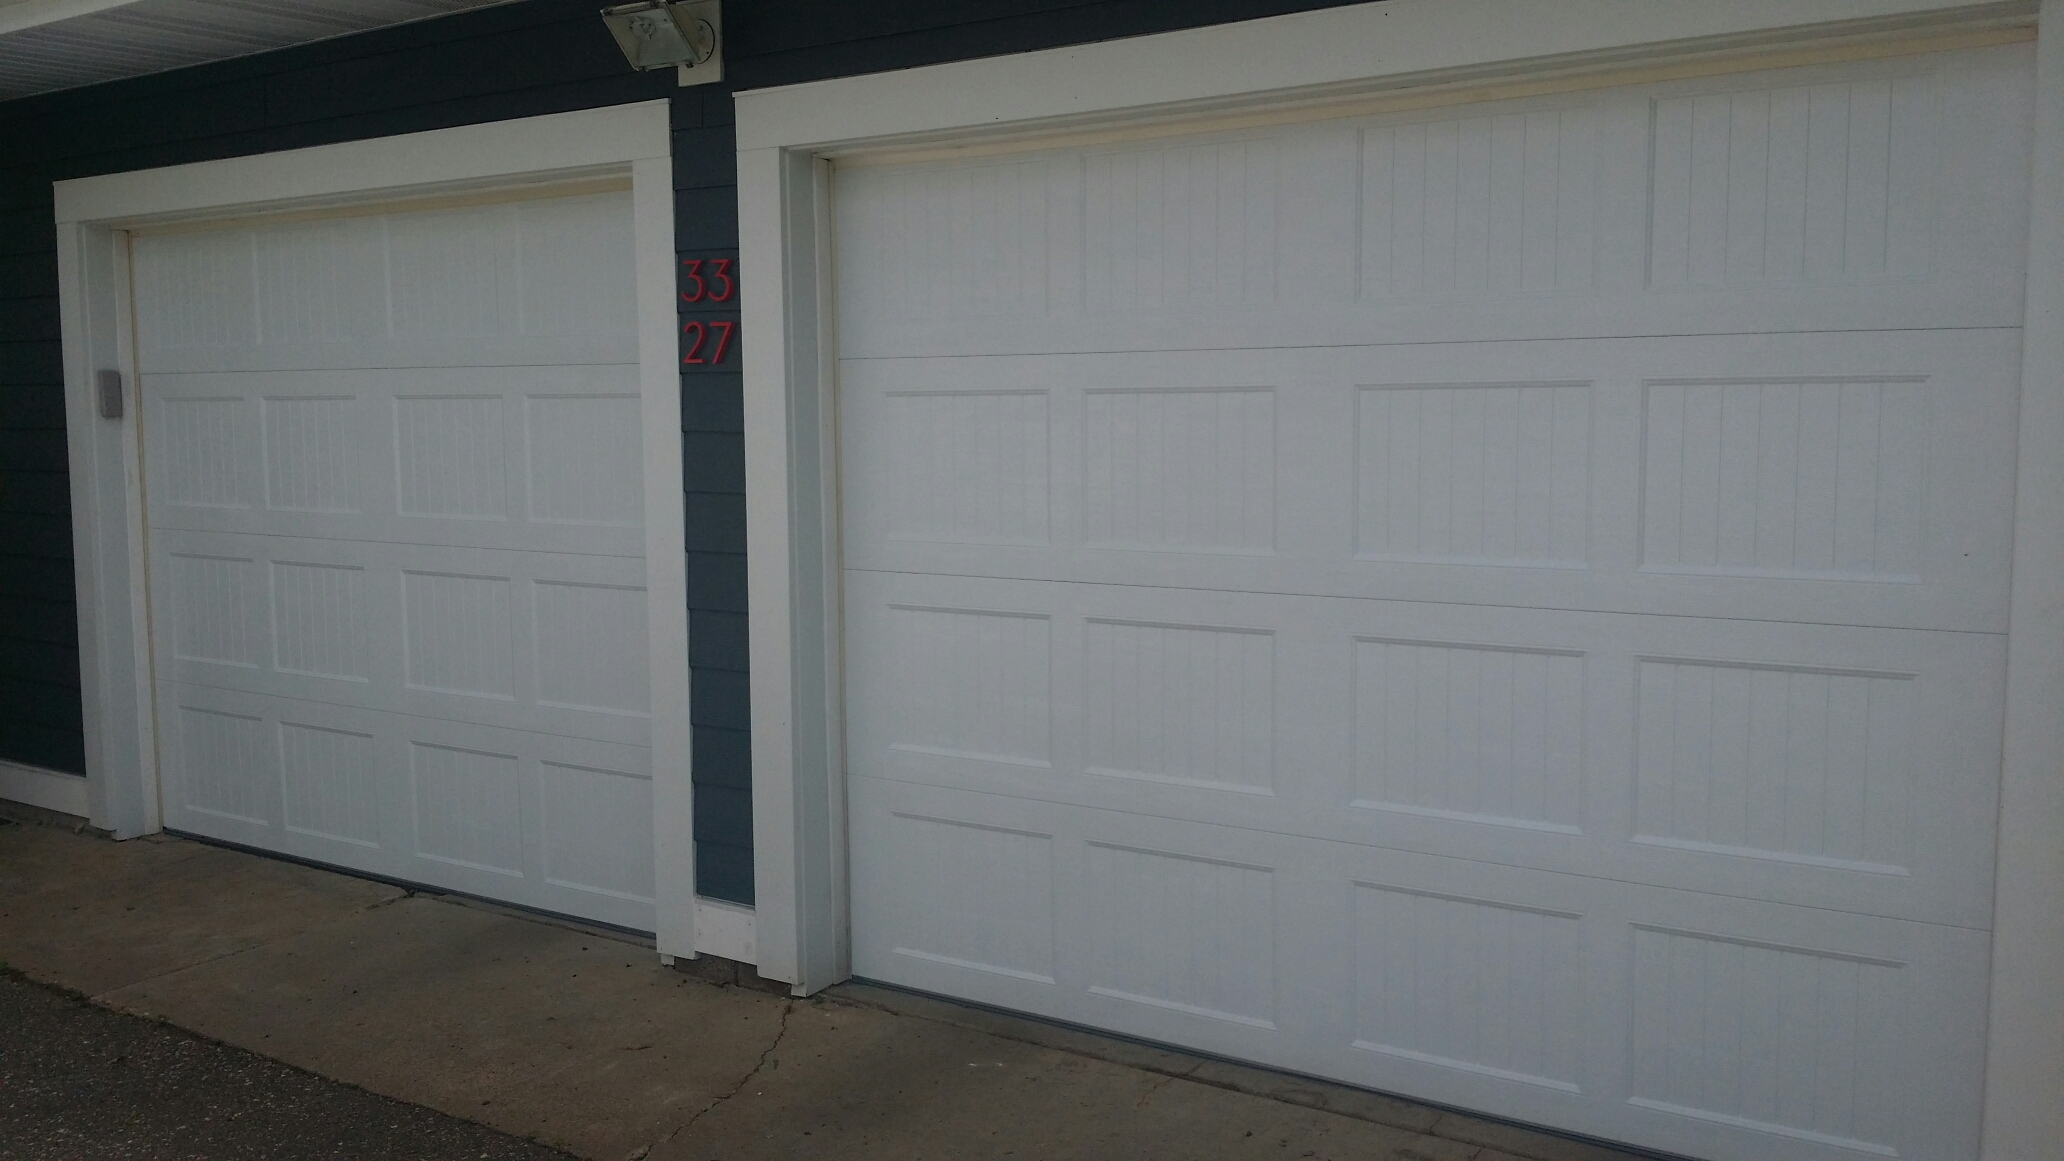 Montrose, MN - Jon and Matt installed 2 North Central AR138 garage doors and 2 LiftMaster 8355 garage door openers